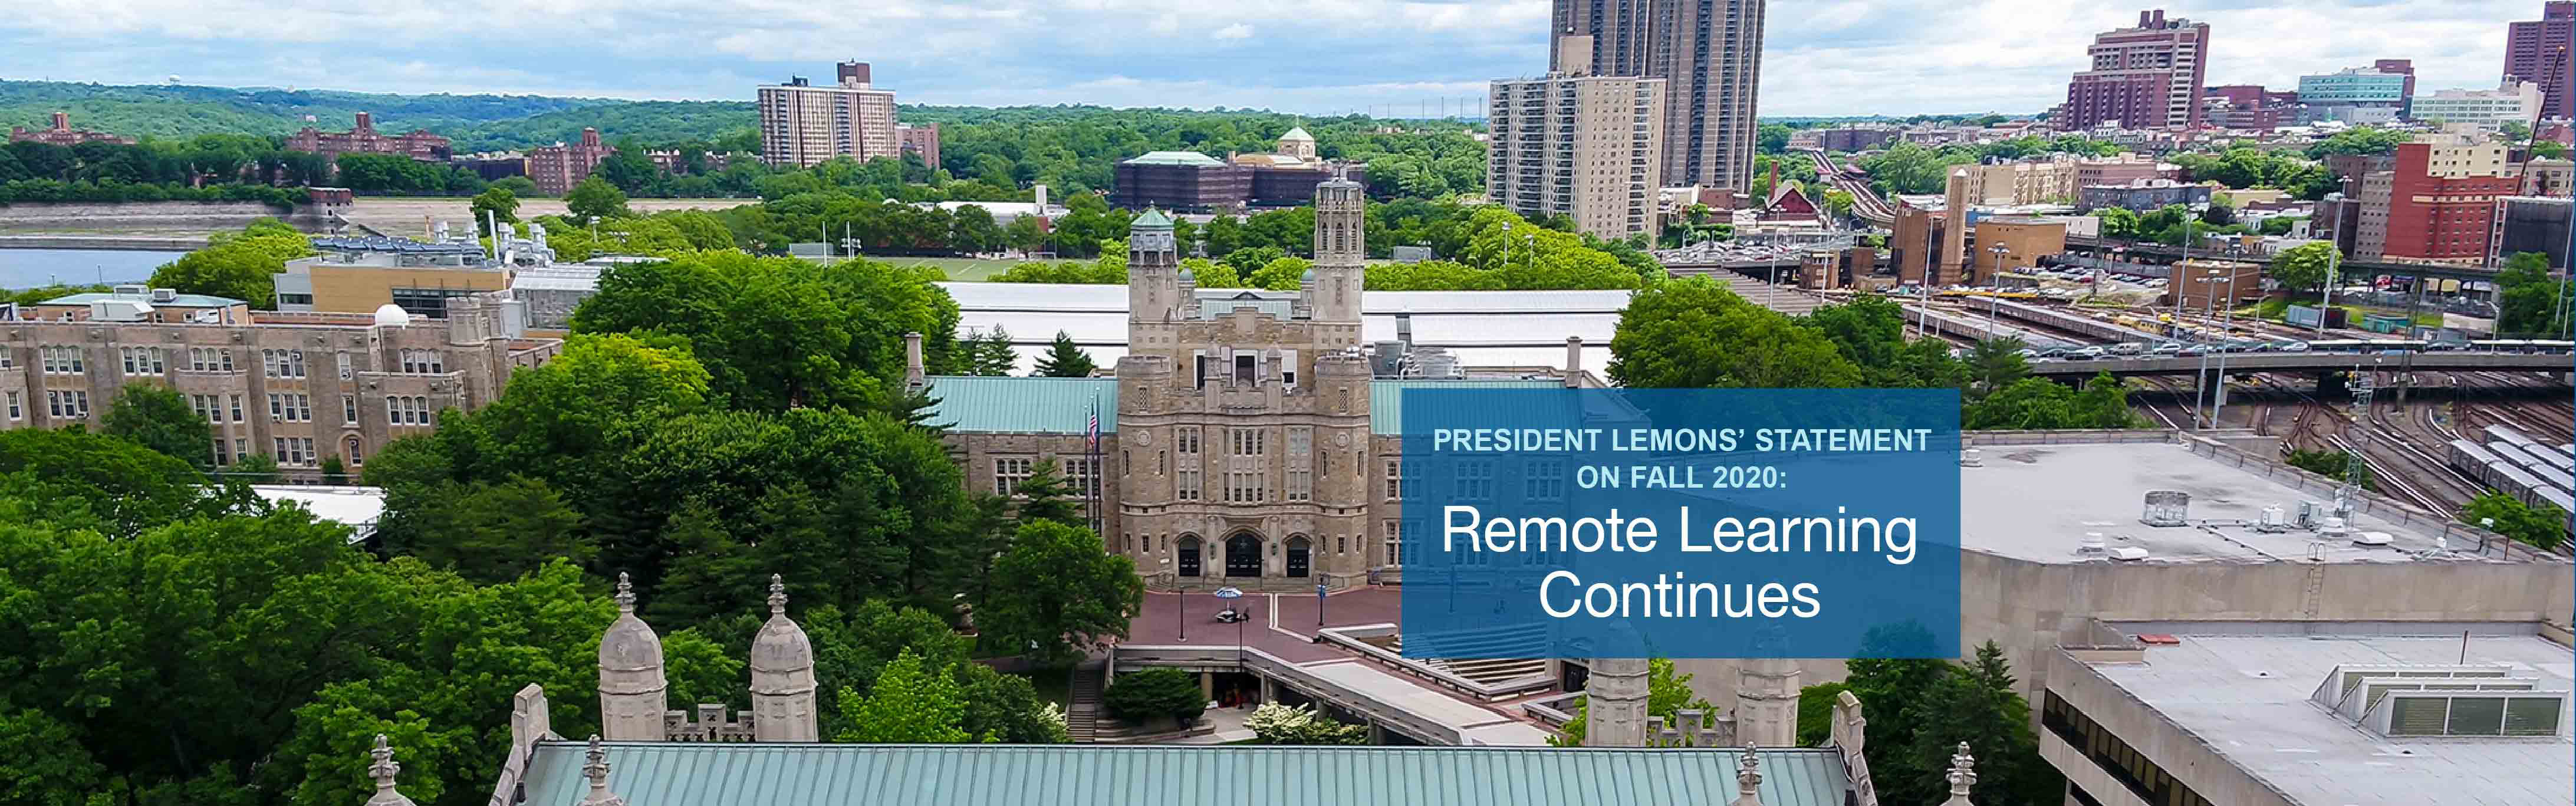 President Lemons Statement on Fall 2020 Online Learning Continues